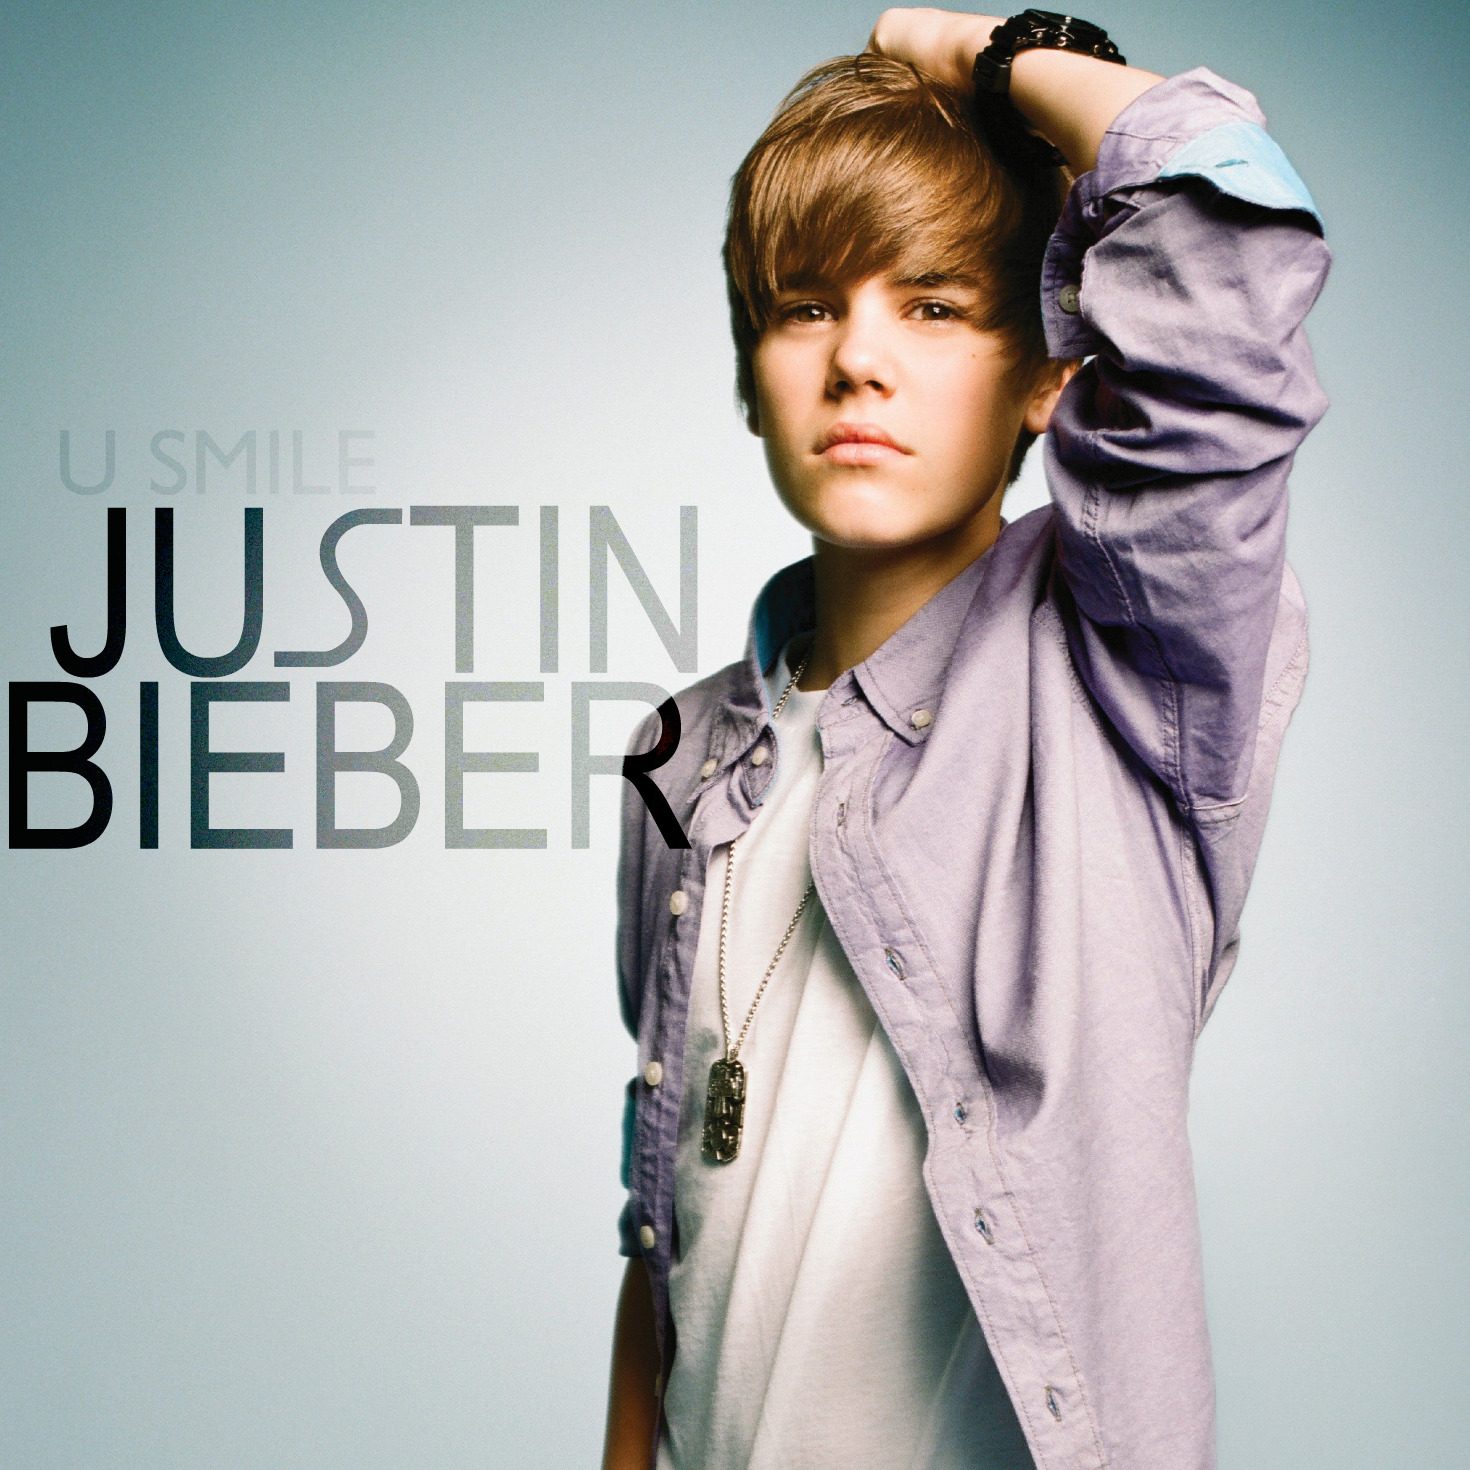 Justin Bieber U Smile Mp3 Ringtone Download